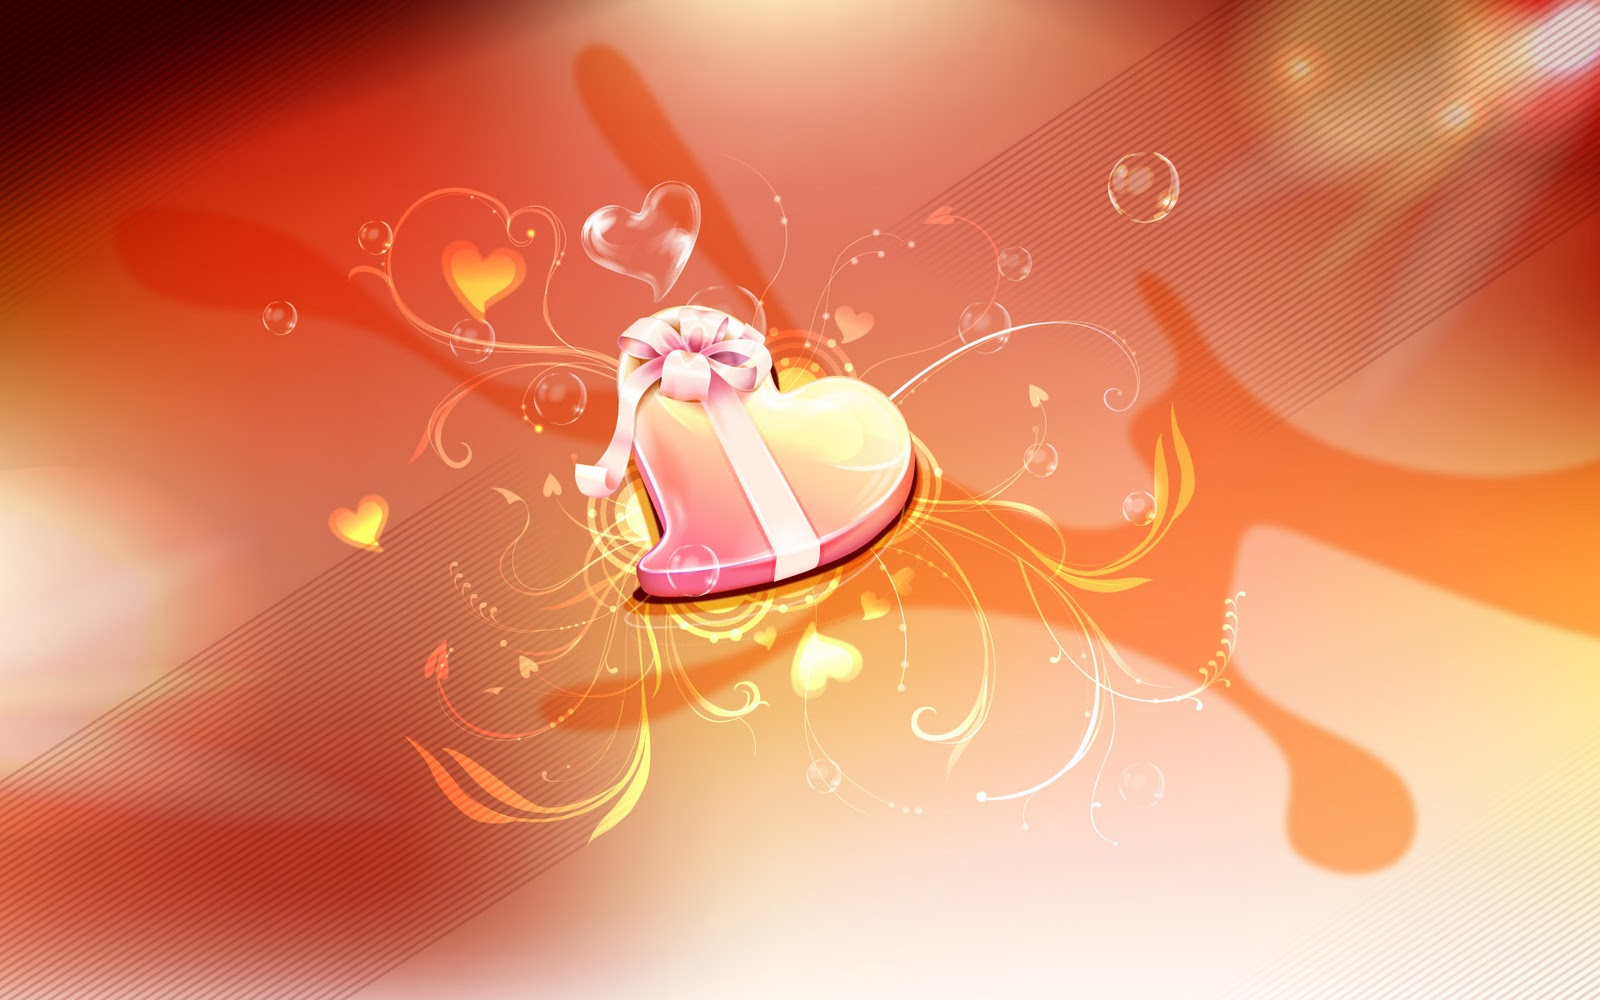 Life for SMS Happy valentines day backgrounds 2 1600x1000